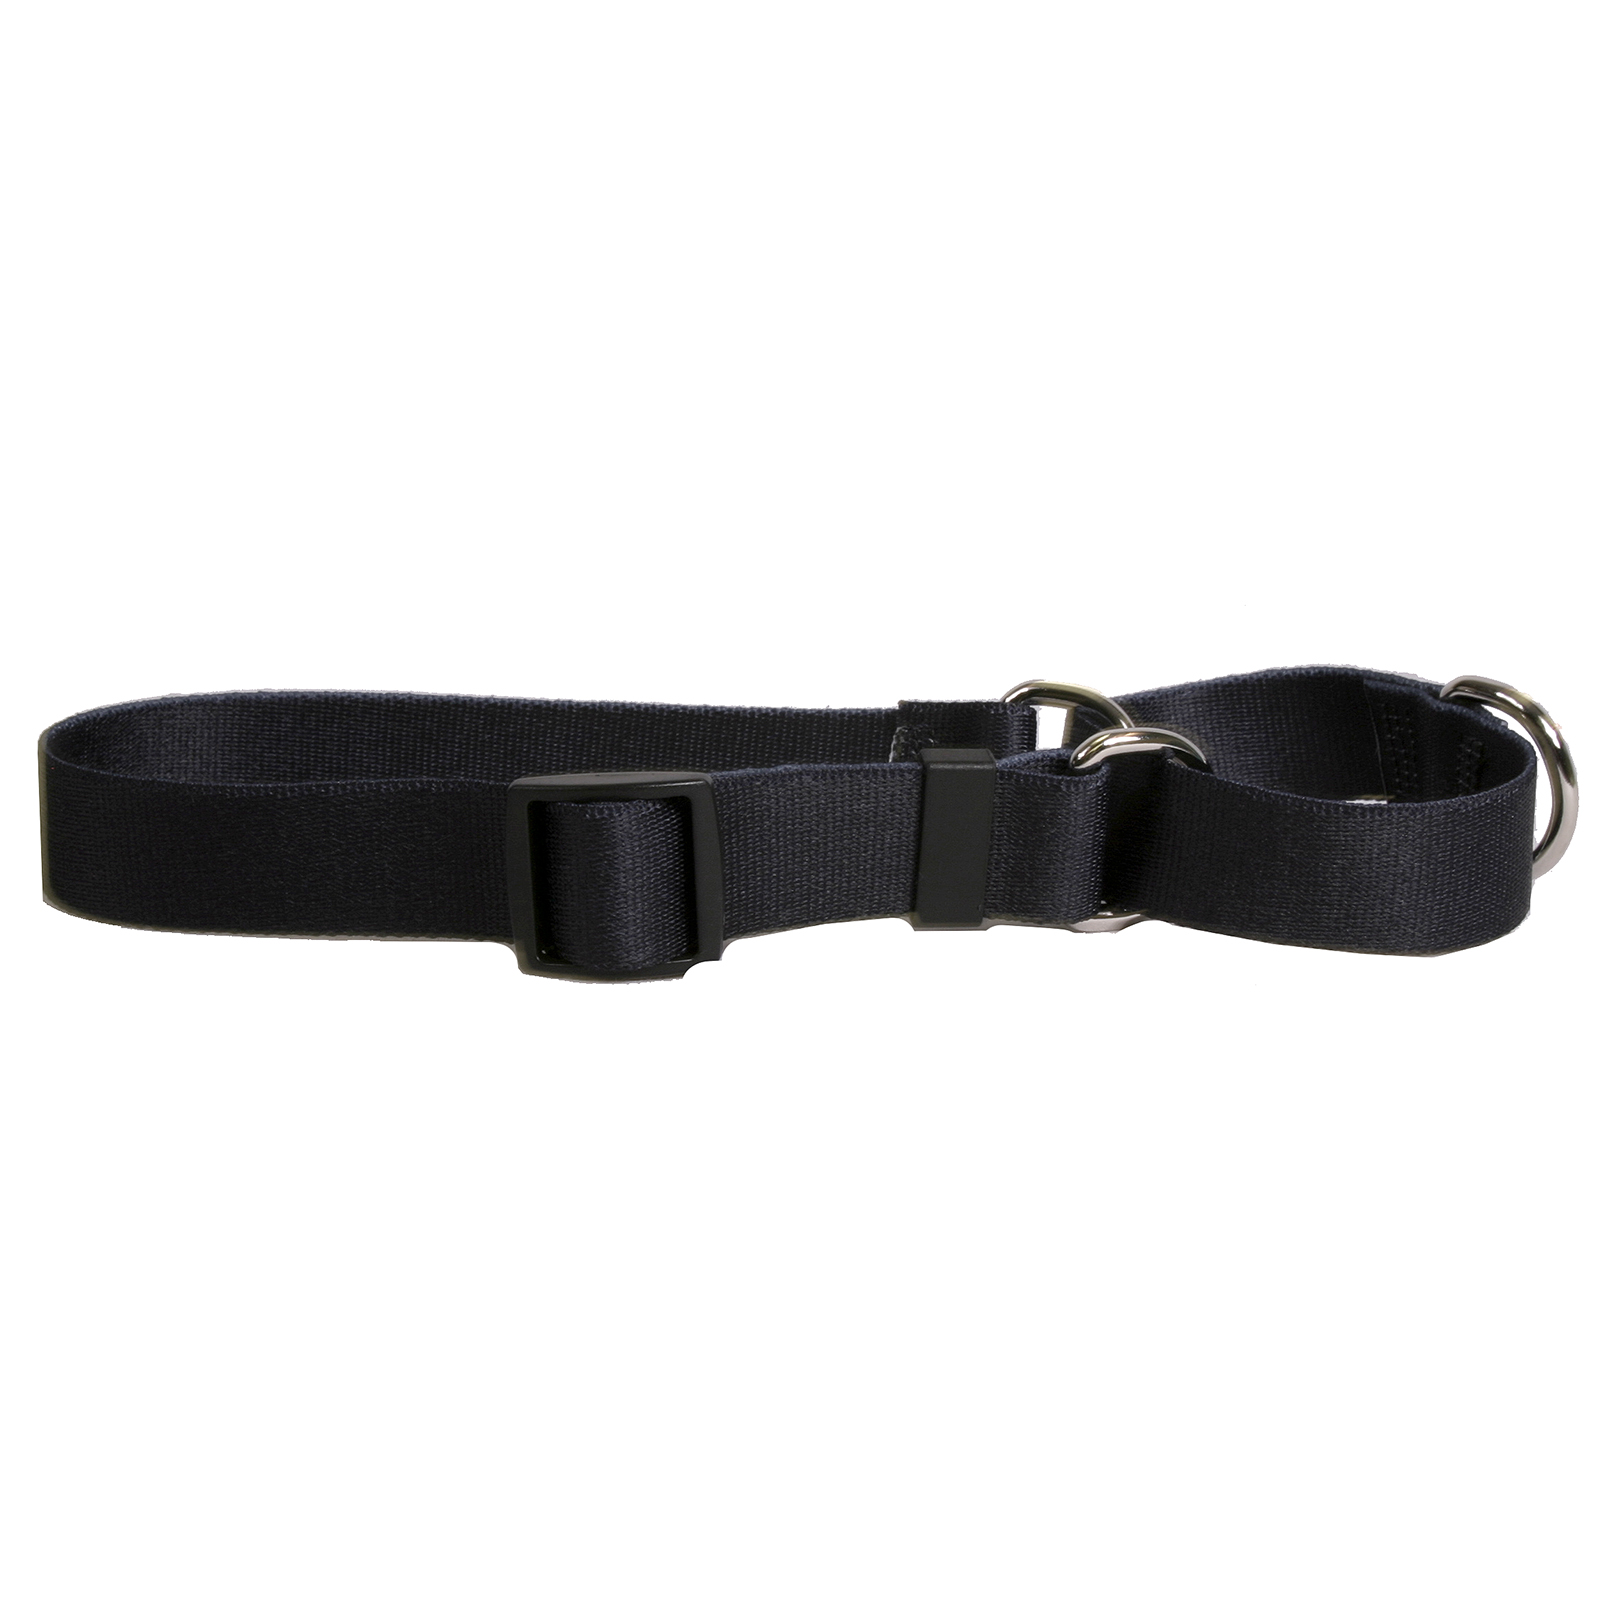 Solid Black Martingale Collar